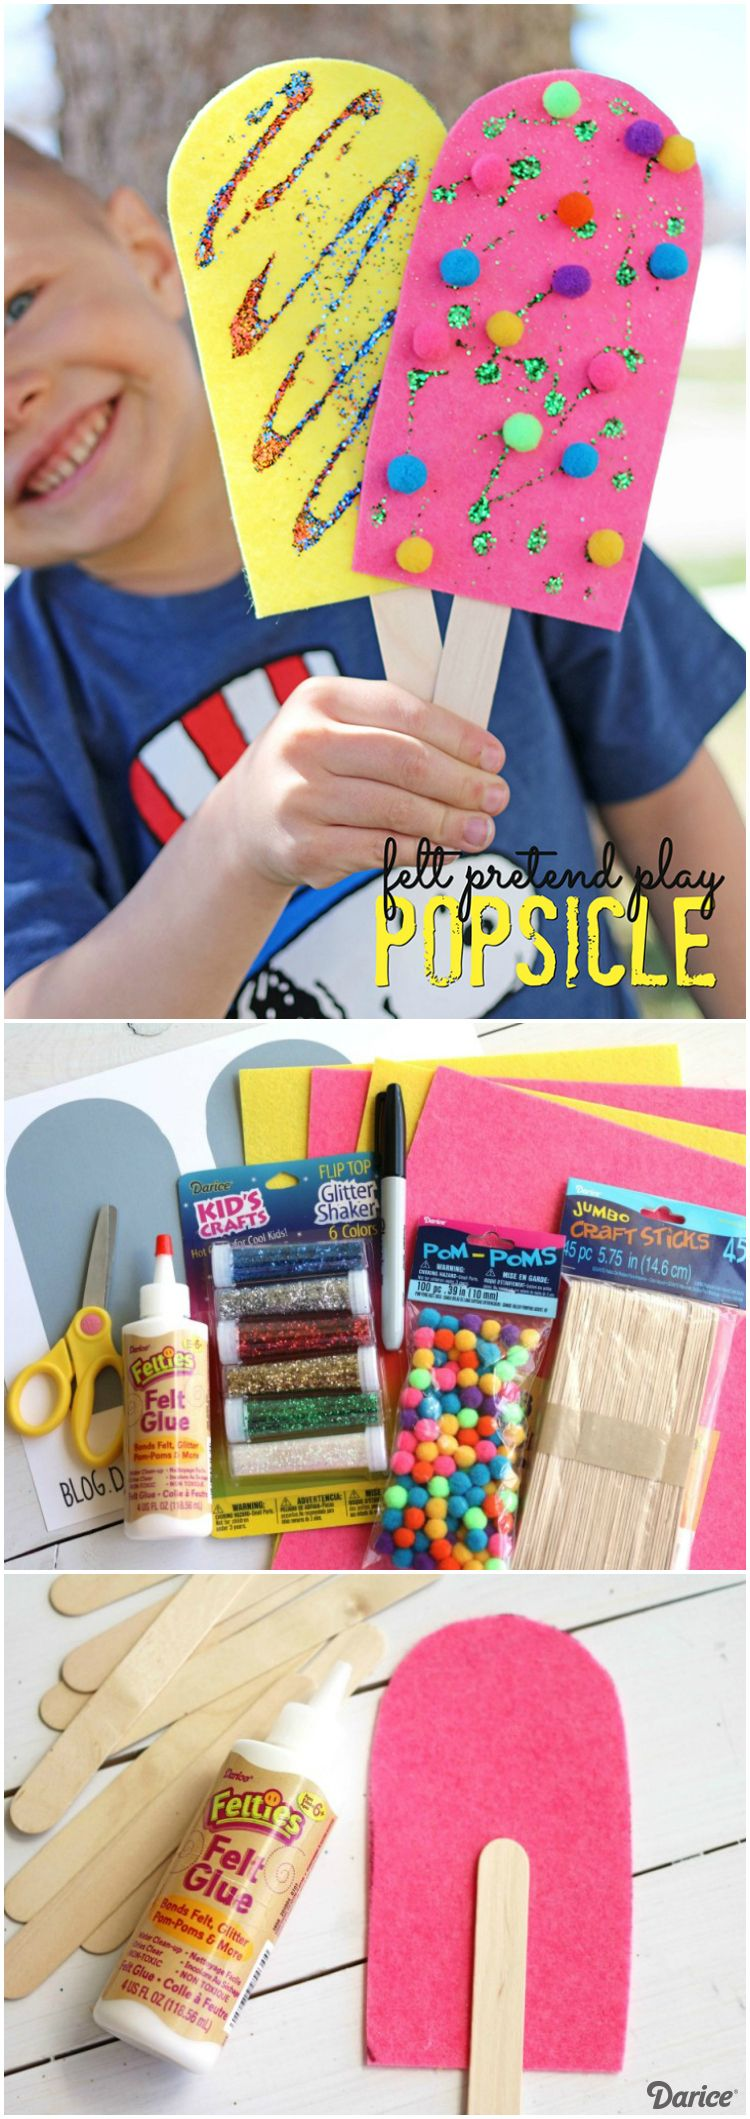 Popsicle craft for pretend play darice crafting for Fun crafts for all ages